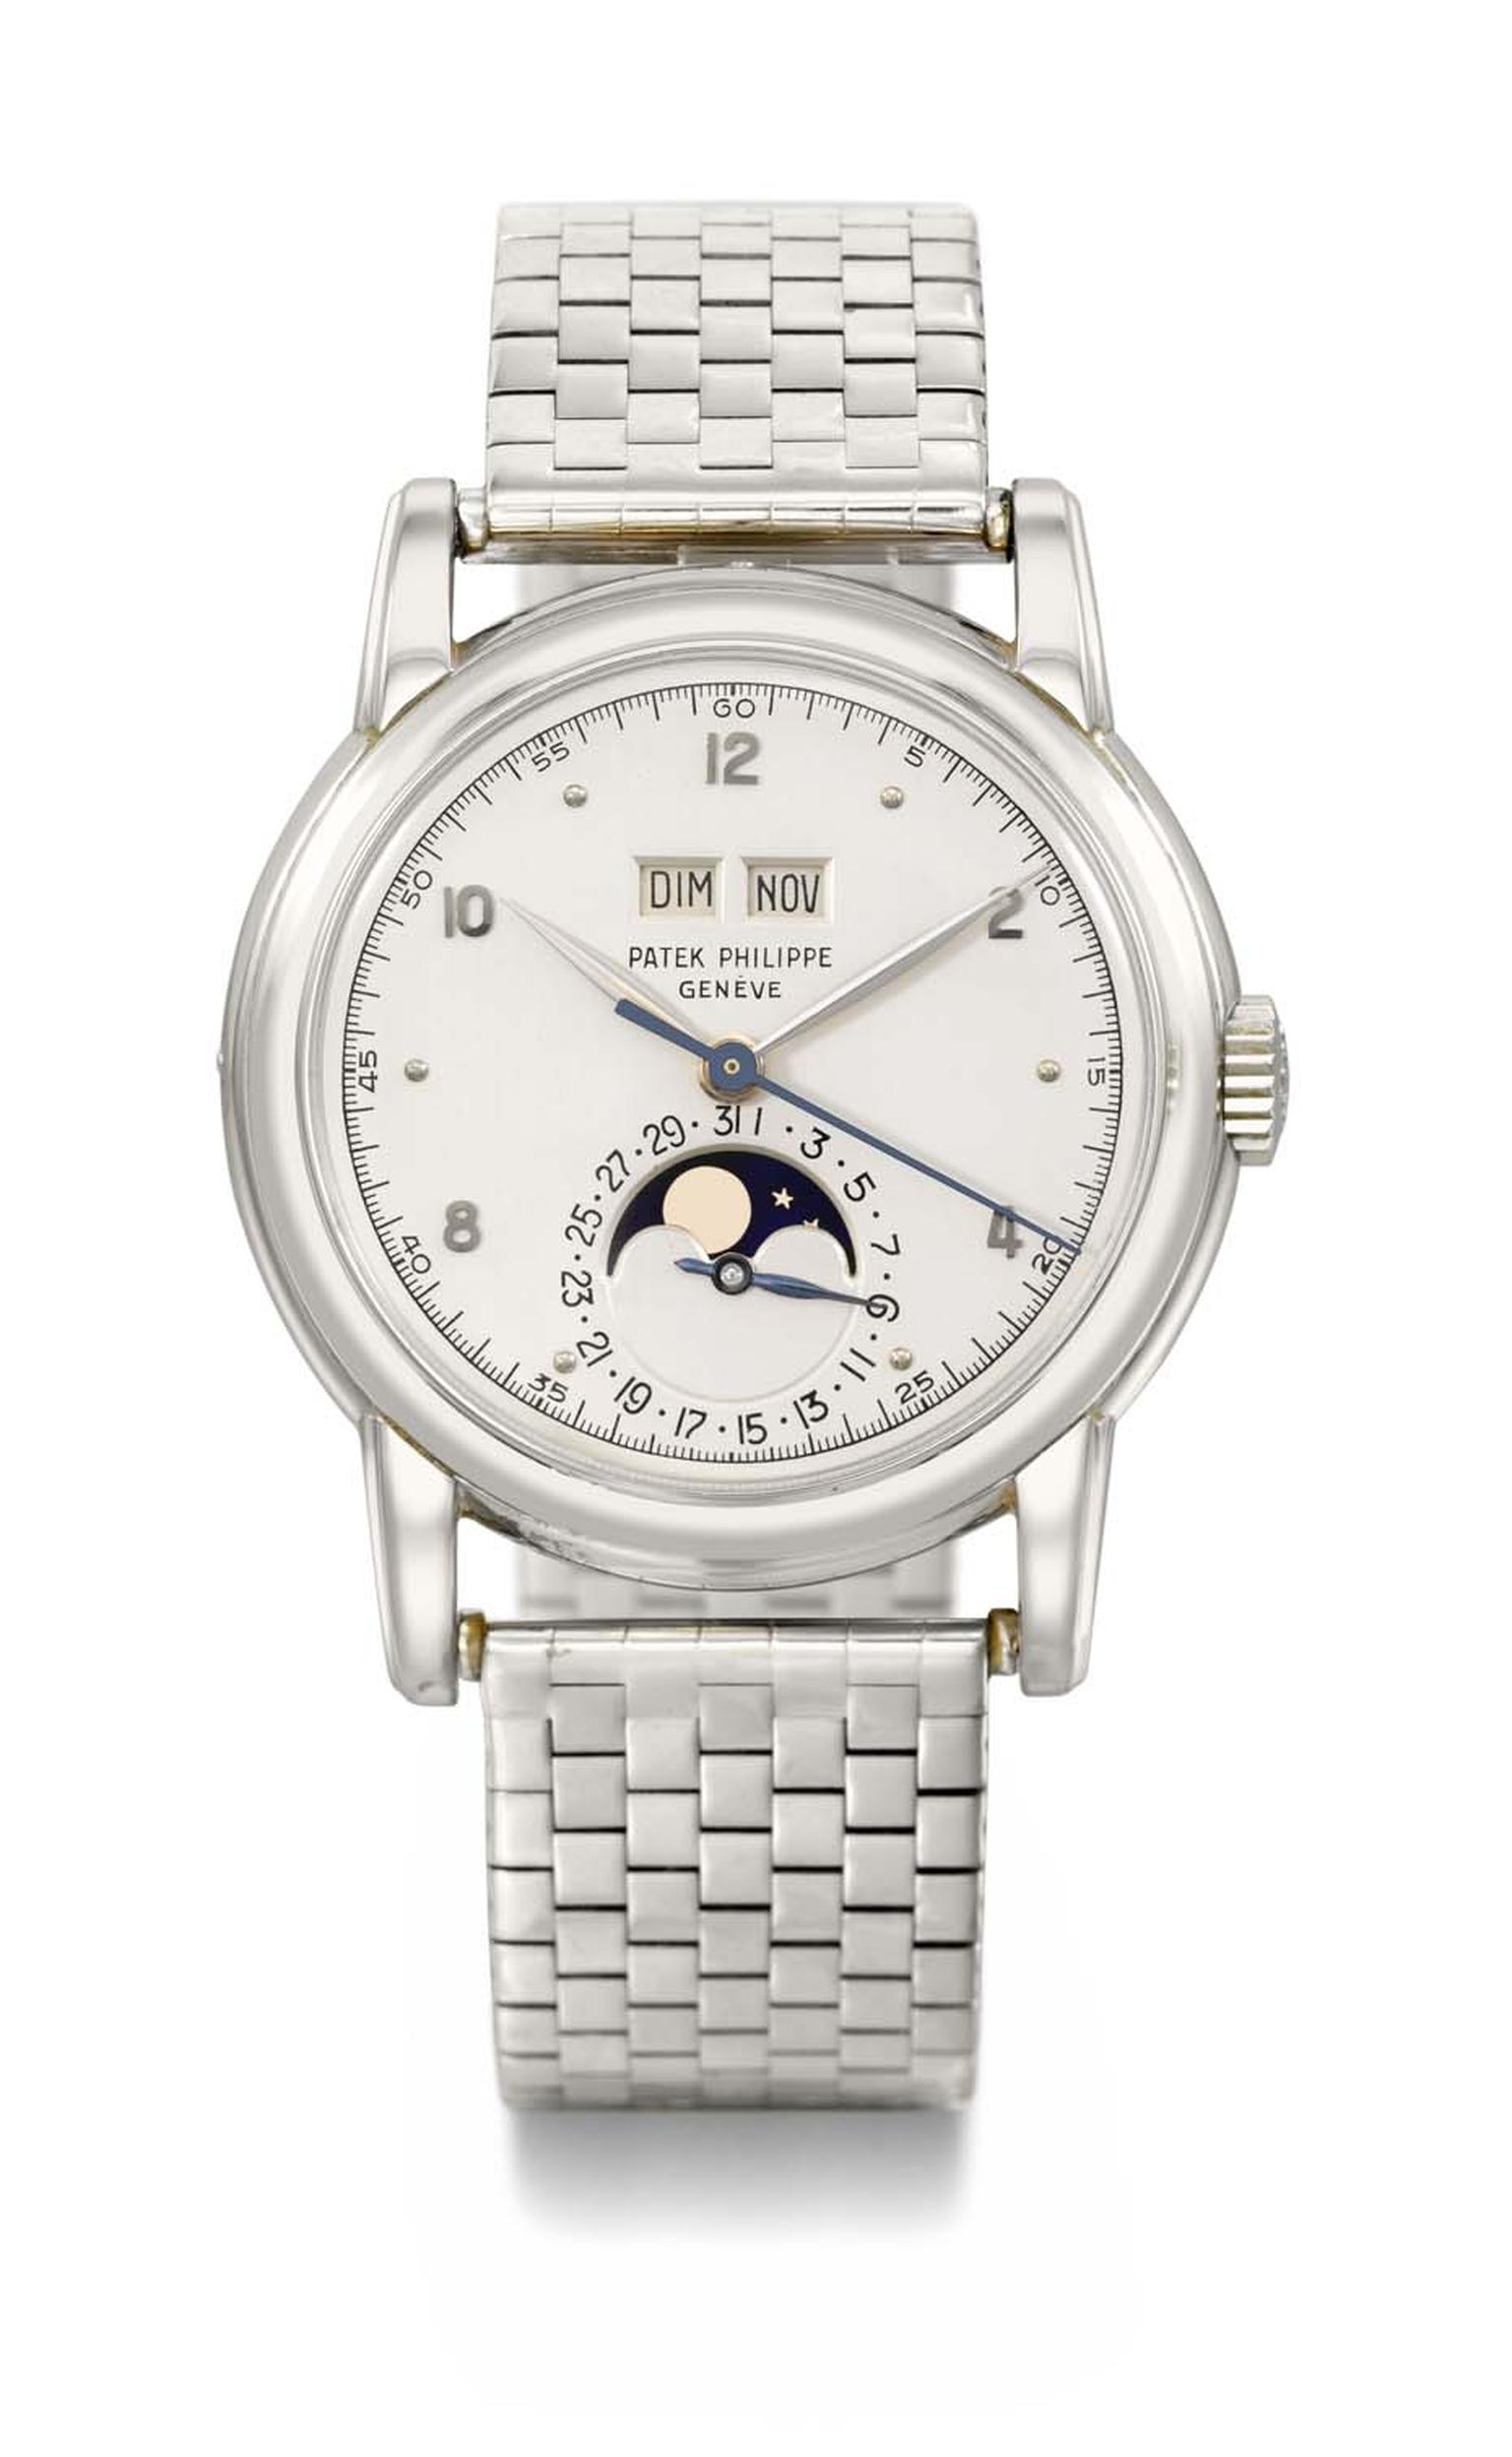 Another watch that is bound to be hotly contested is the Patek Philippe watch Reference 2497 in white gold - one of three models in white gold of this reference known to exist.